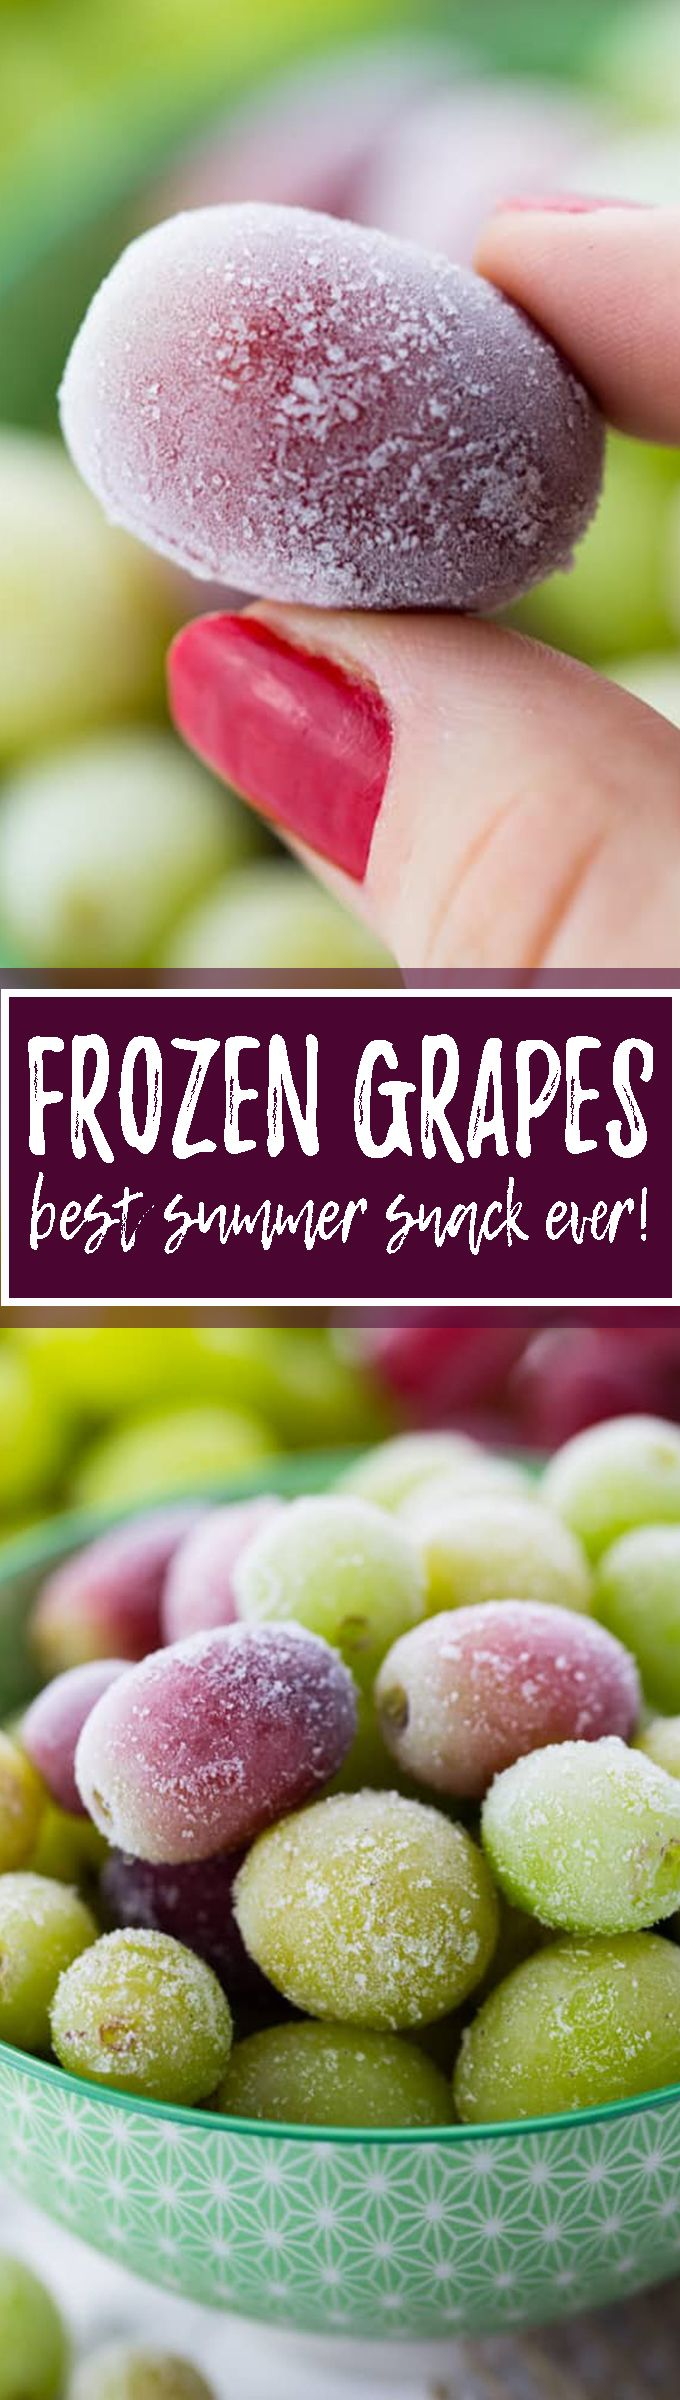 Frozen grapes are the best vegan snack ever! They taste just like frozen candy and are so healthy and refreshing, especially in the summer! One of my favorite vegan desserts, such a healthy snack! <3 | veganheaven.org